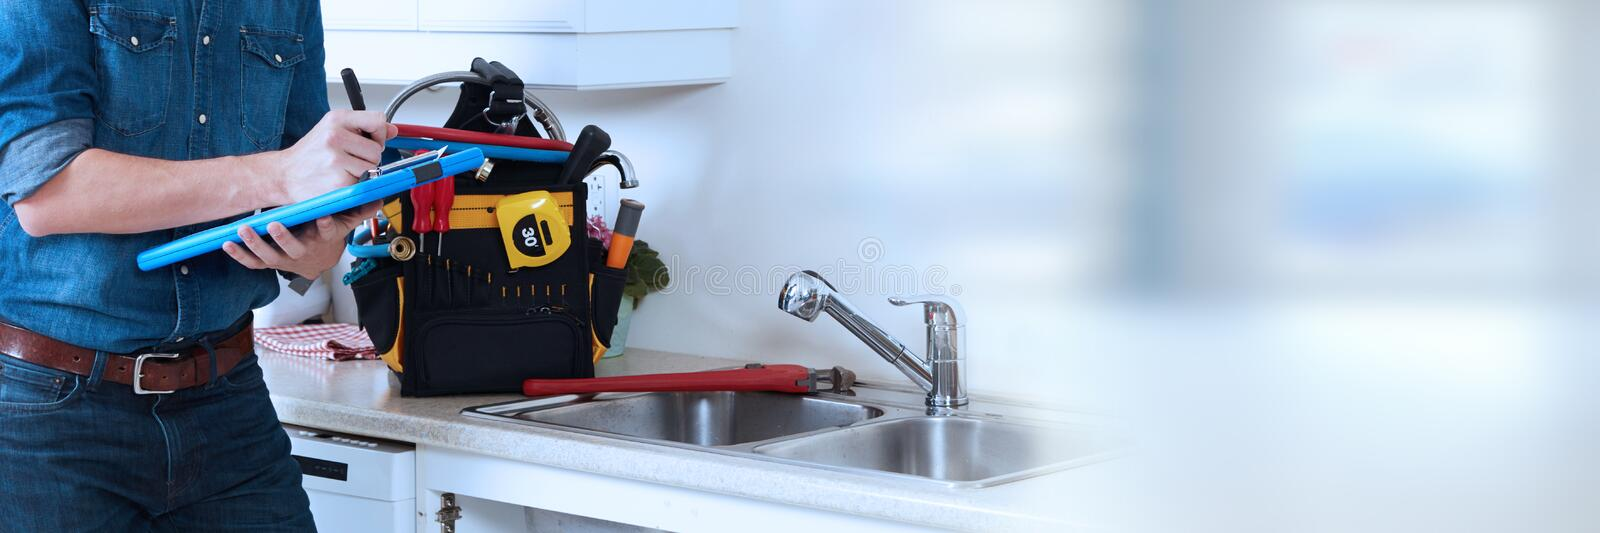 Plumber hands. Professional plumber working renovation in kitchen home stock image